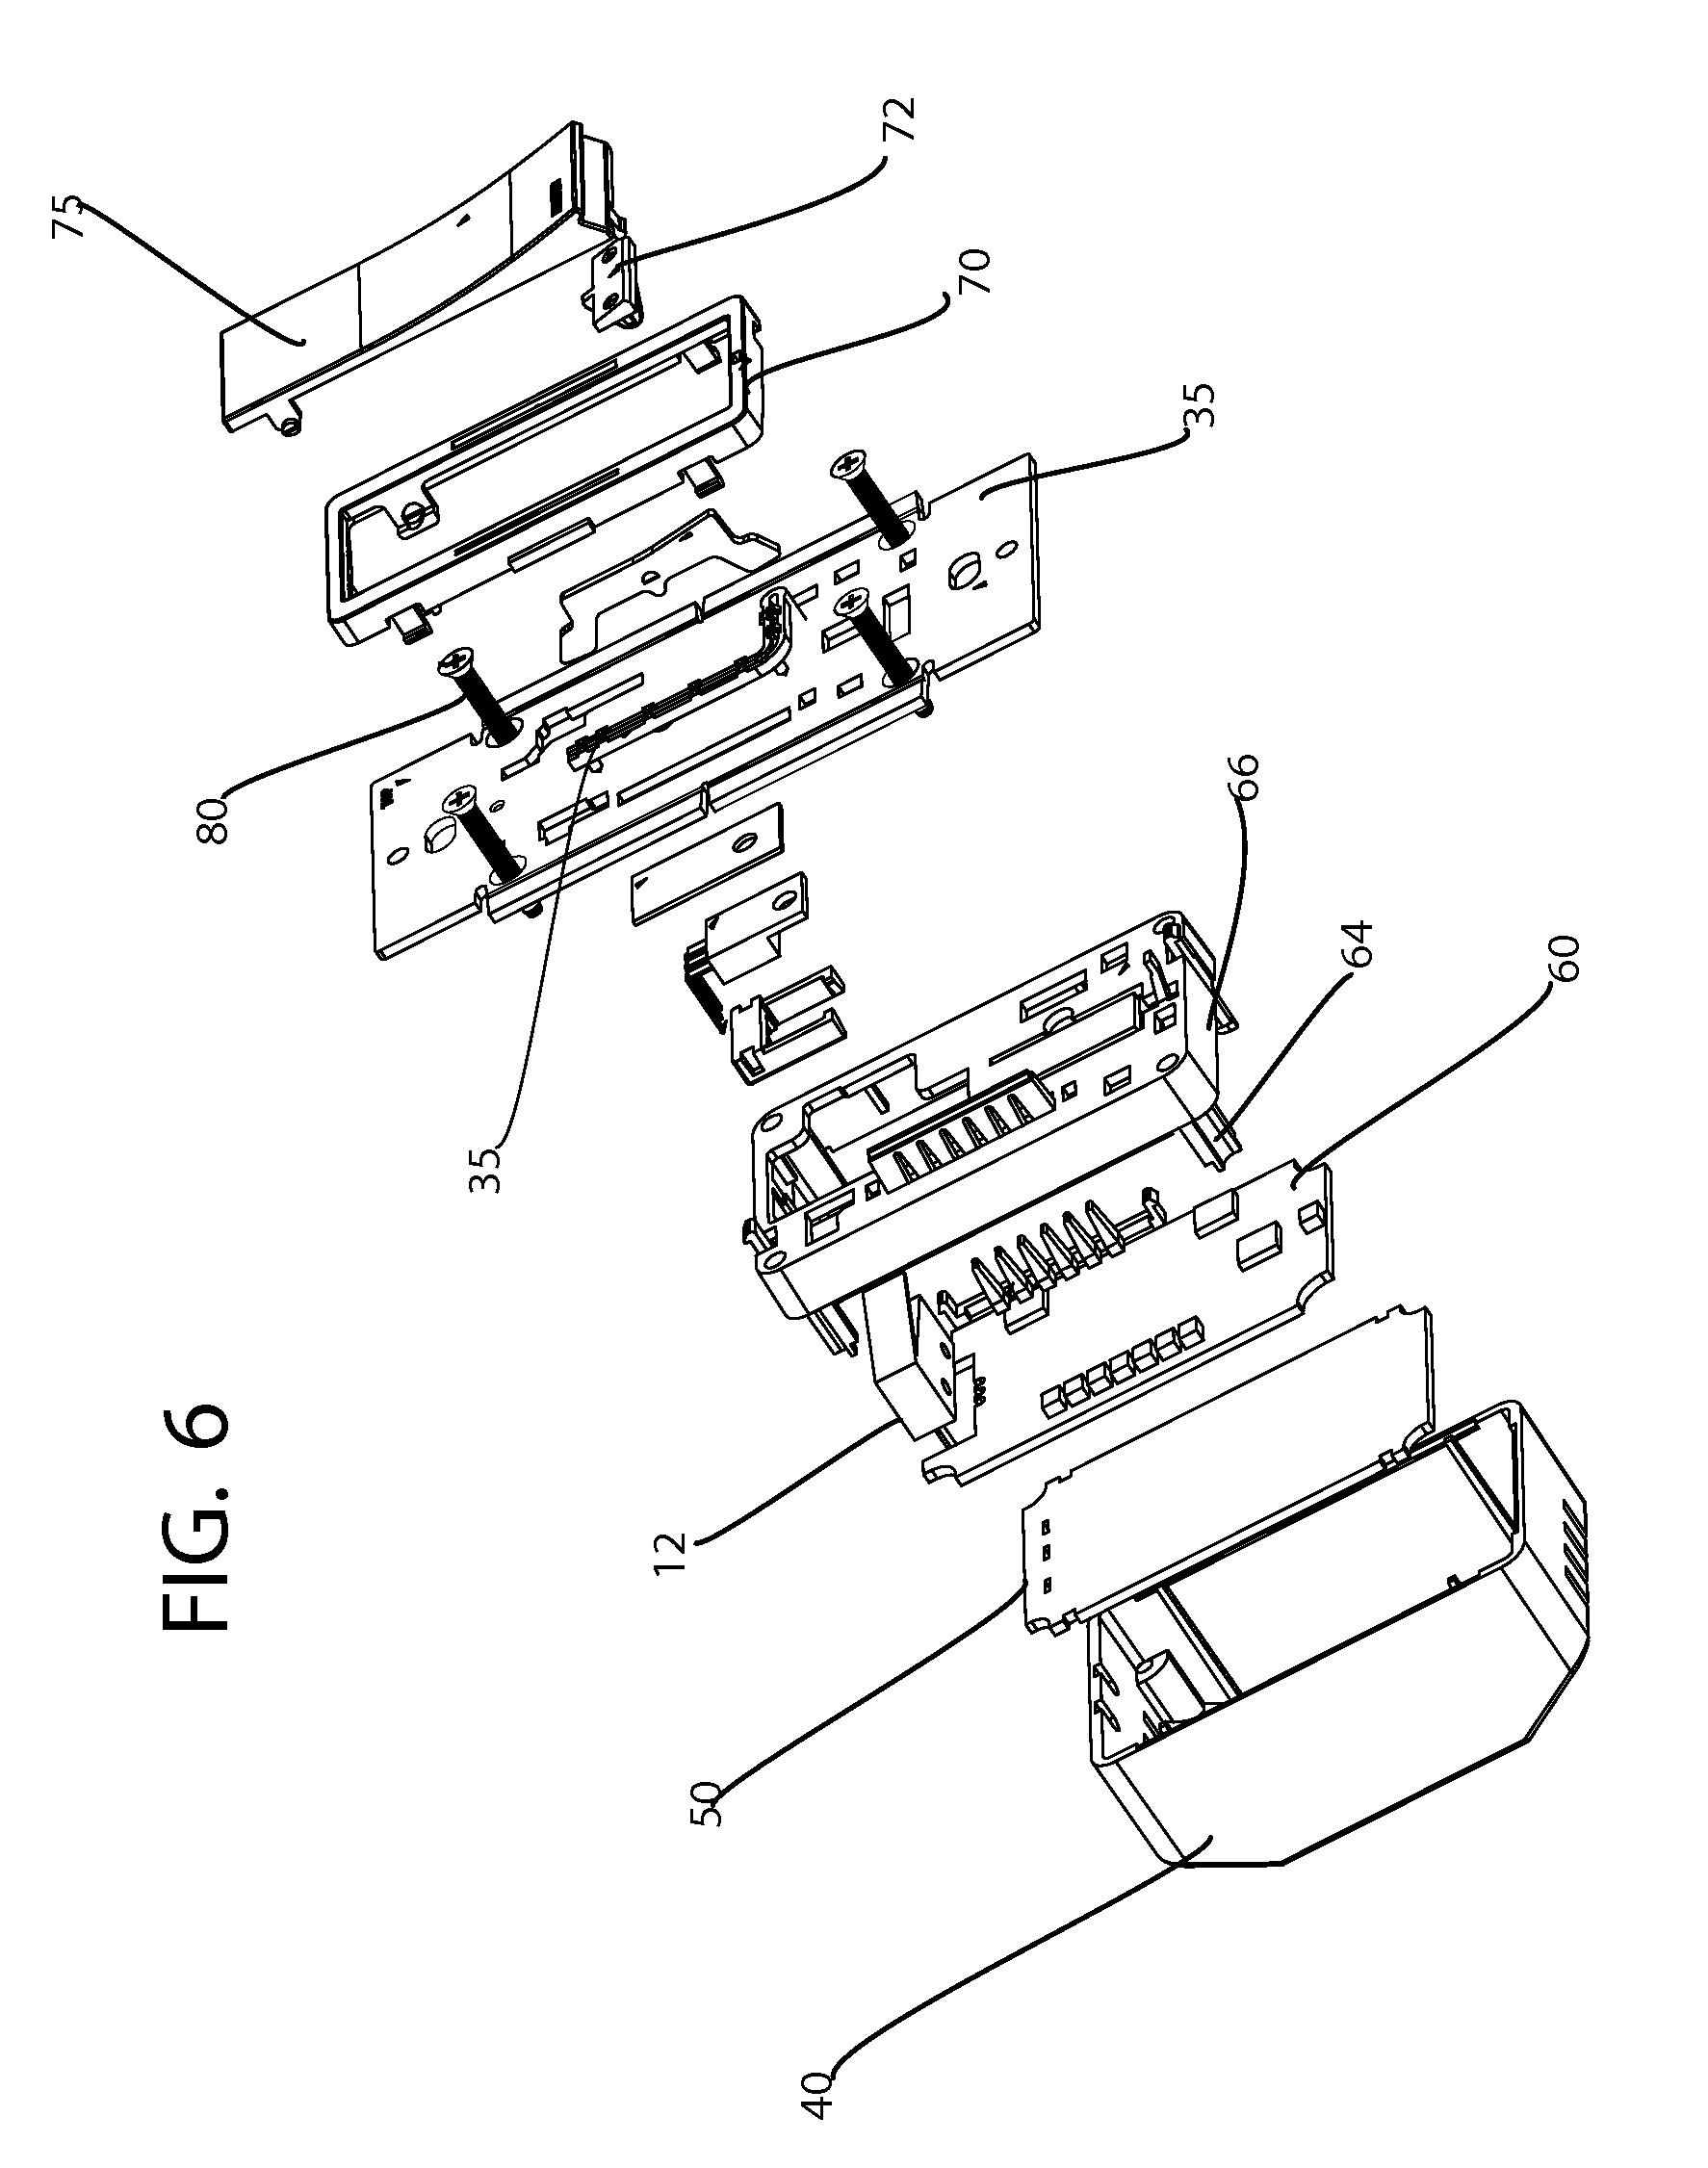 Patent Us7756556 Rf Antenna Integrated Into A Control Device Lutron Mar Wiring Diagram Drawing